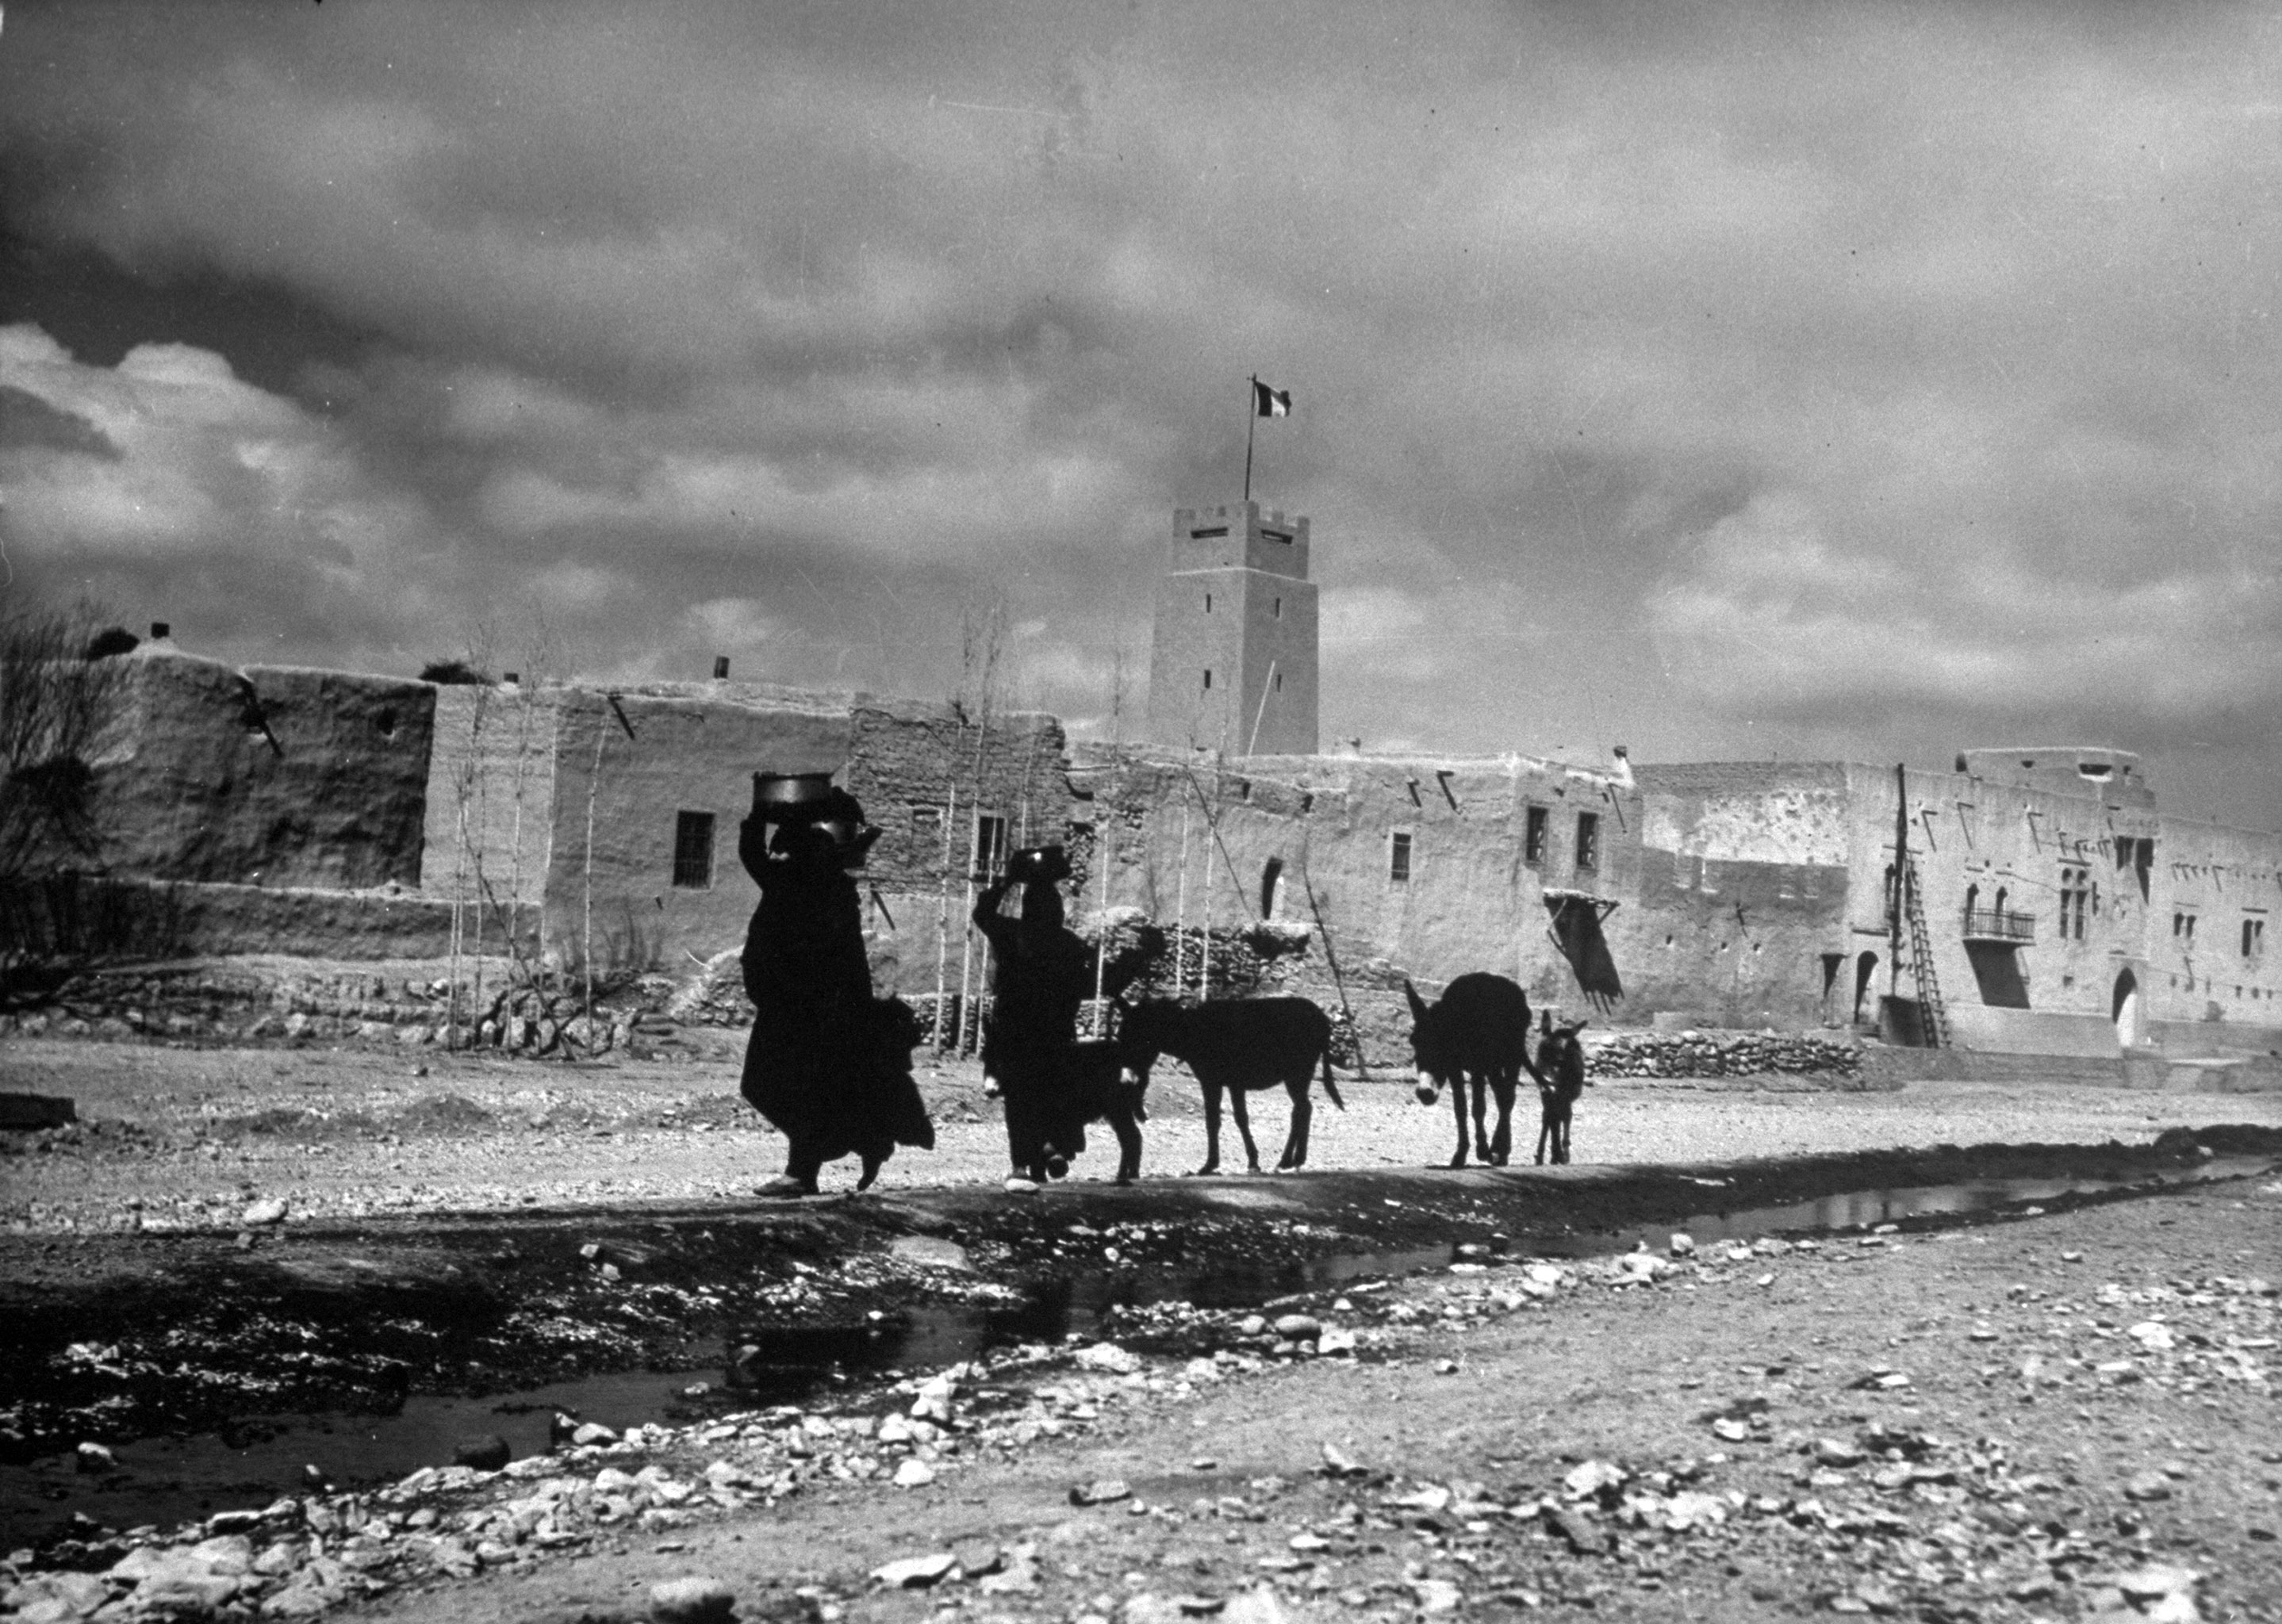 Women carry water containers on their heads as they lead mules along a road in a desert village near Damascus, Syria, 1940.